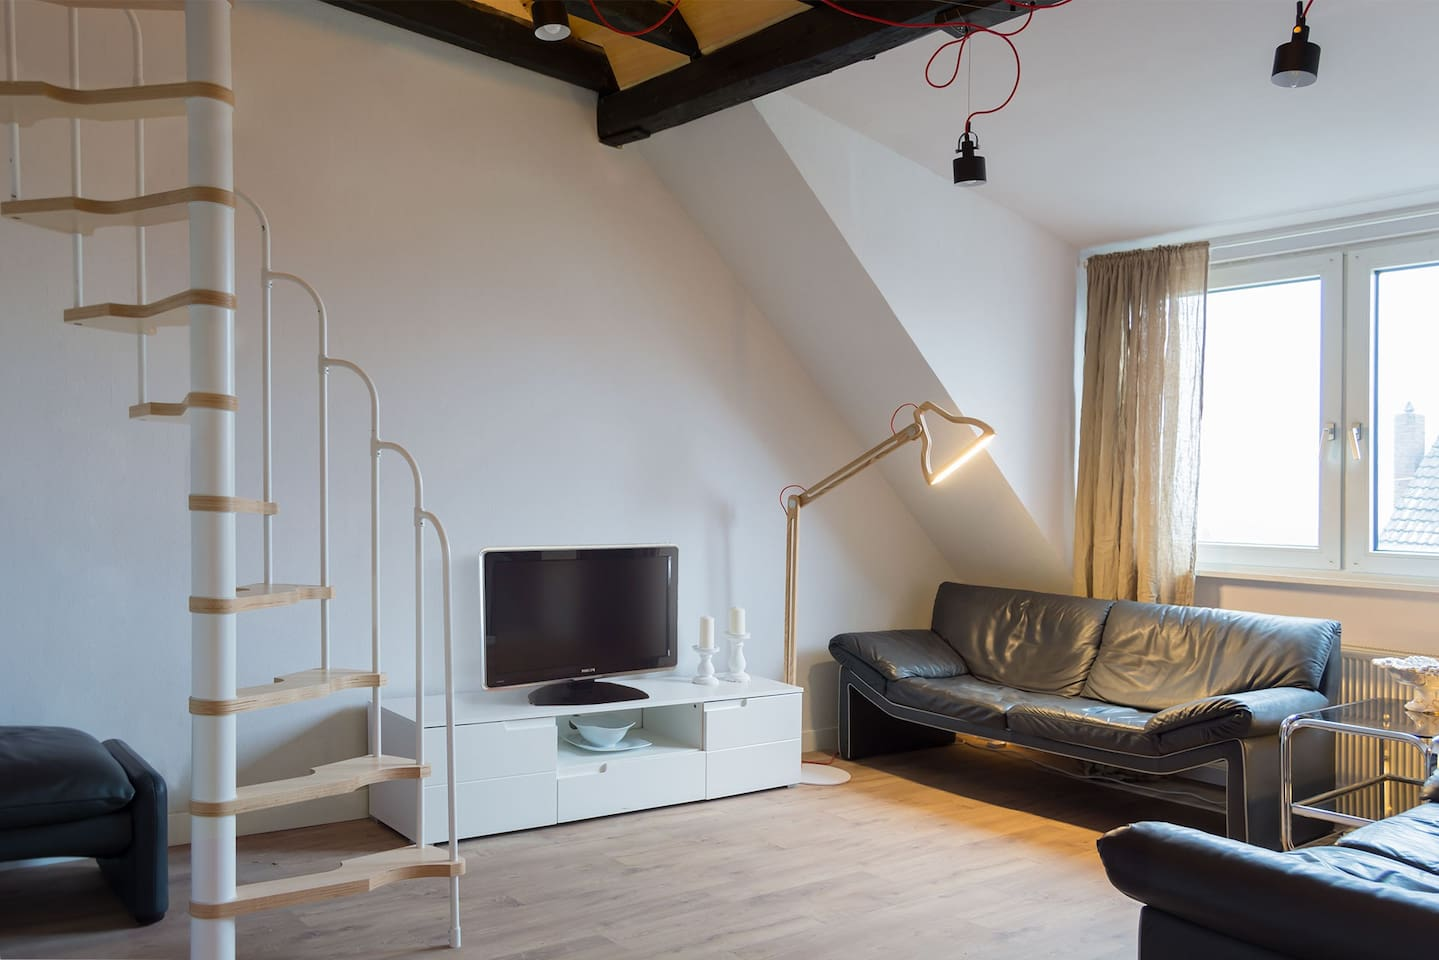 Spacious living room with a staircase to a small additional bedroom on the mezzanine.